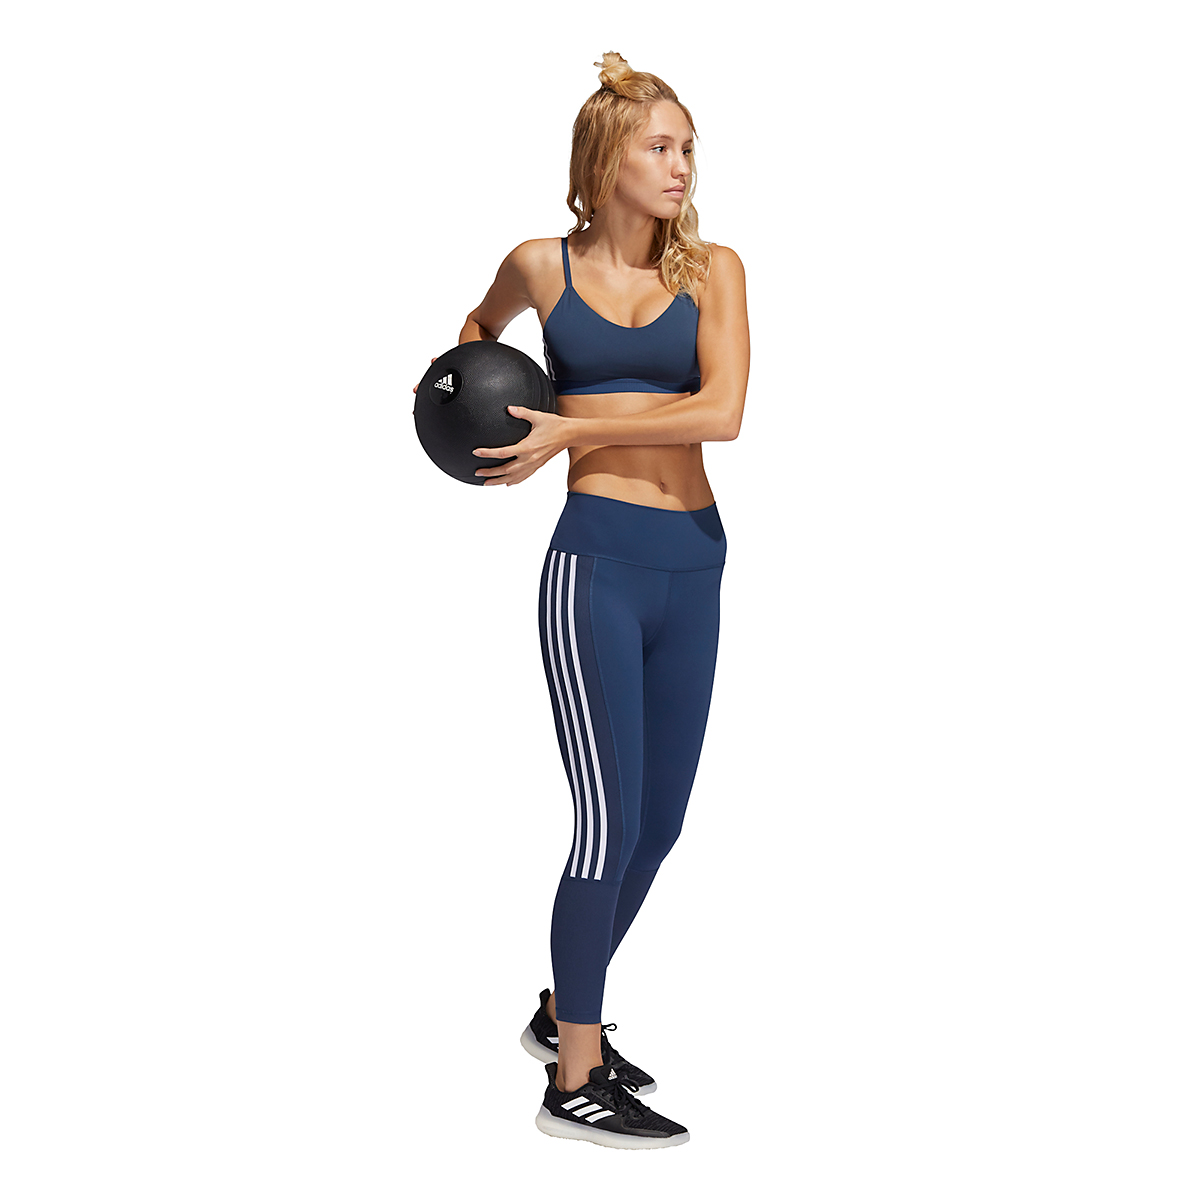 Women's Adidas All Me 3 Stripe Mesh Bra - Color: Navy - Size: XXS, Navy, large, image 3